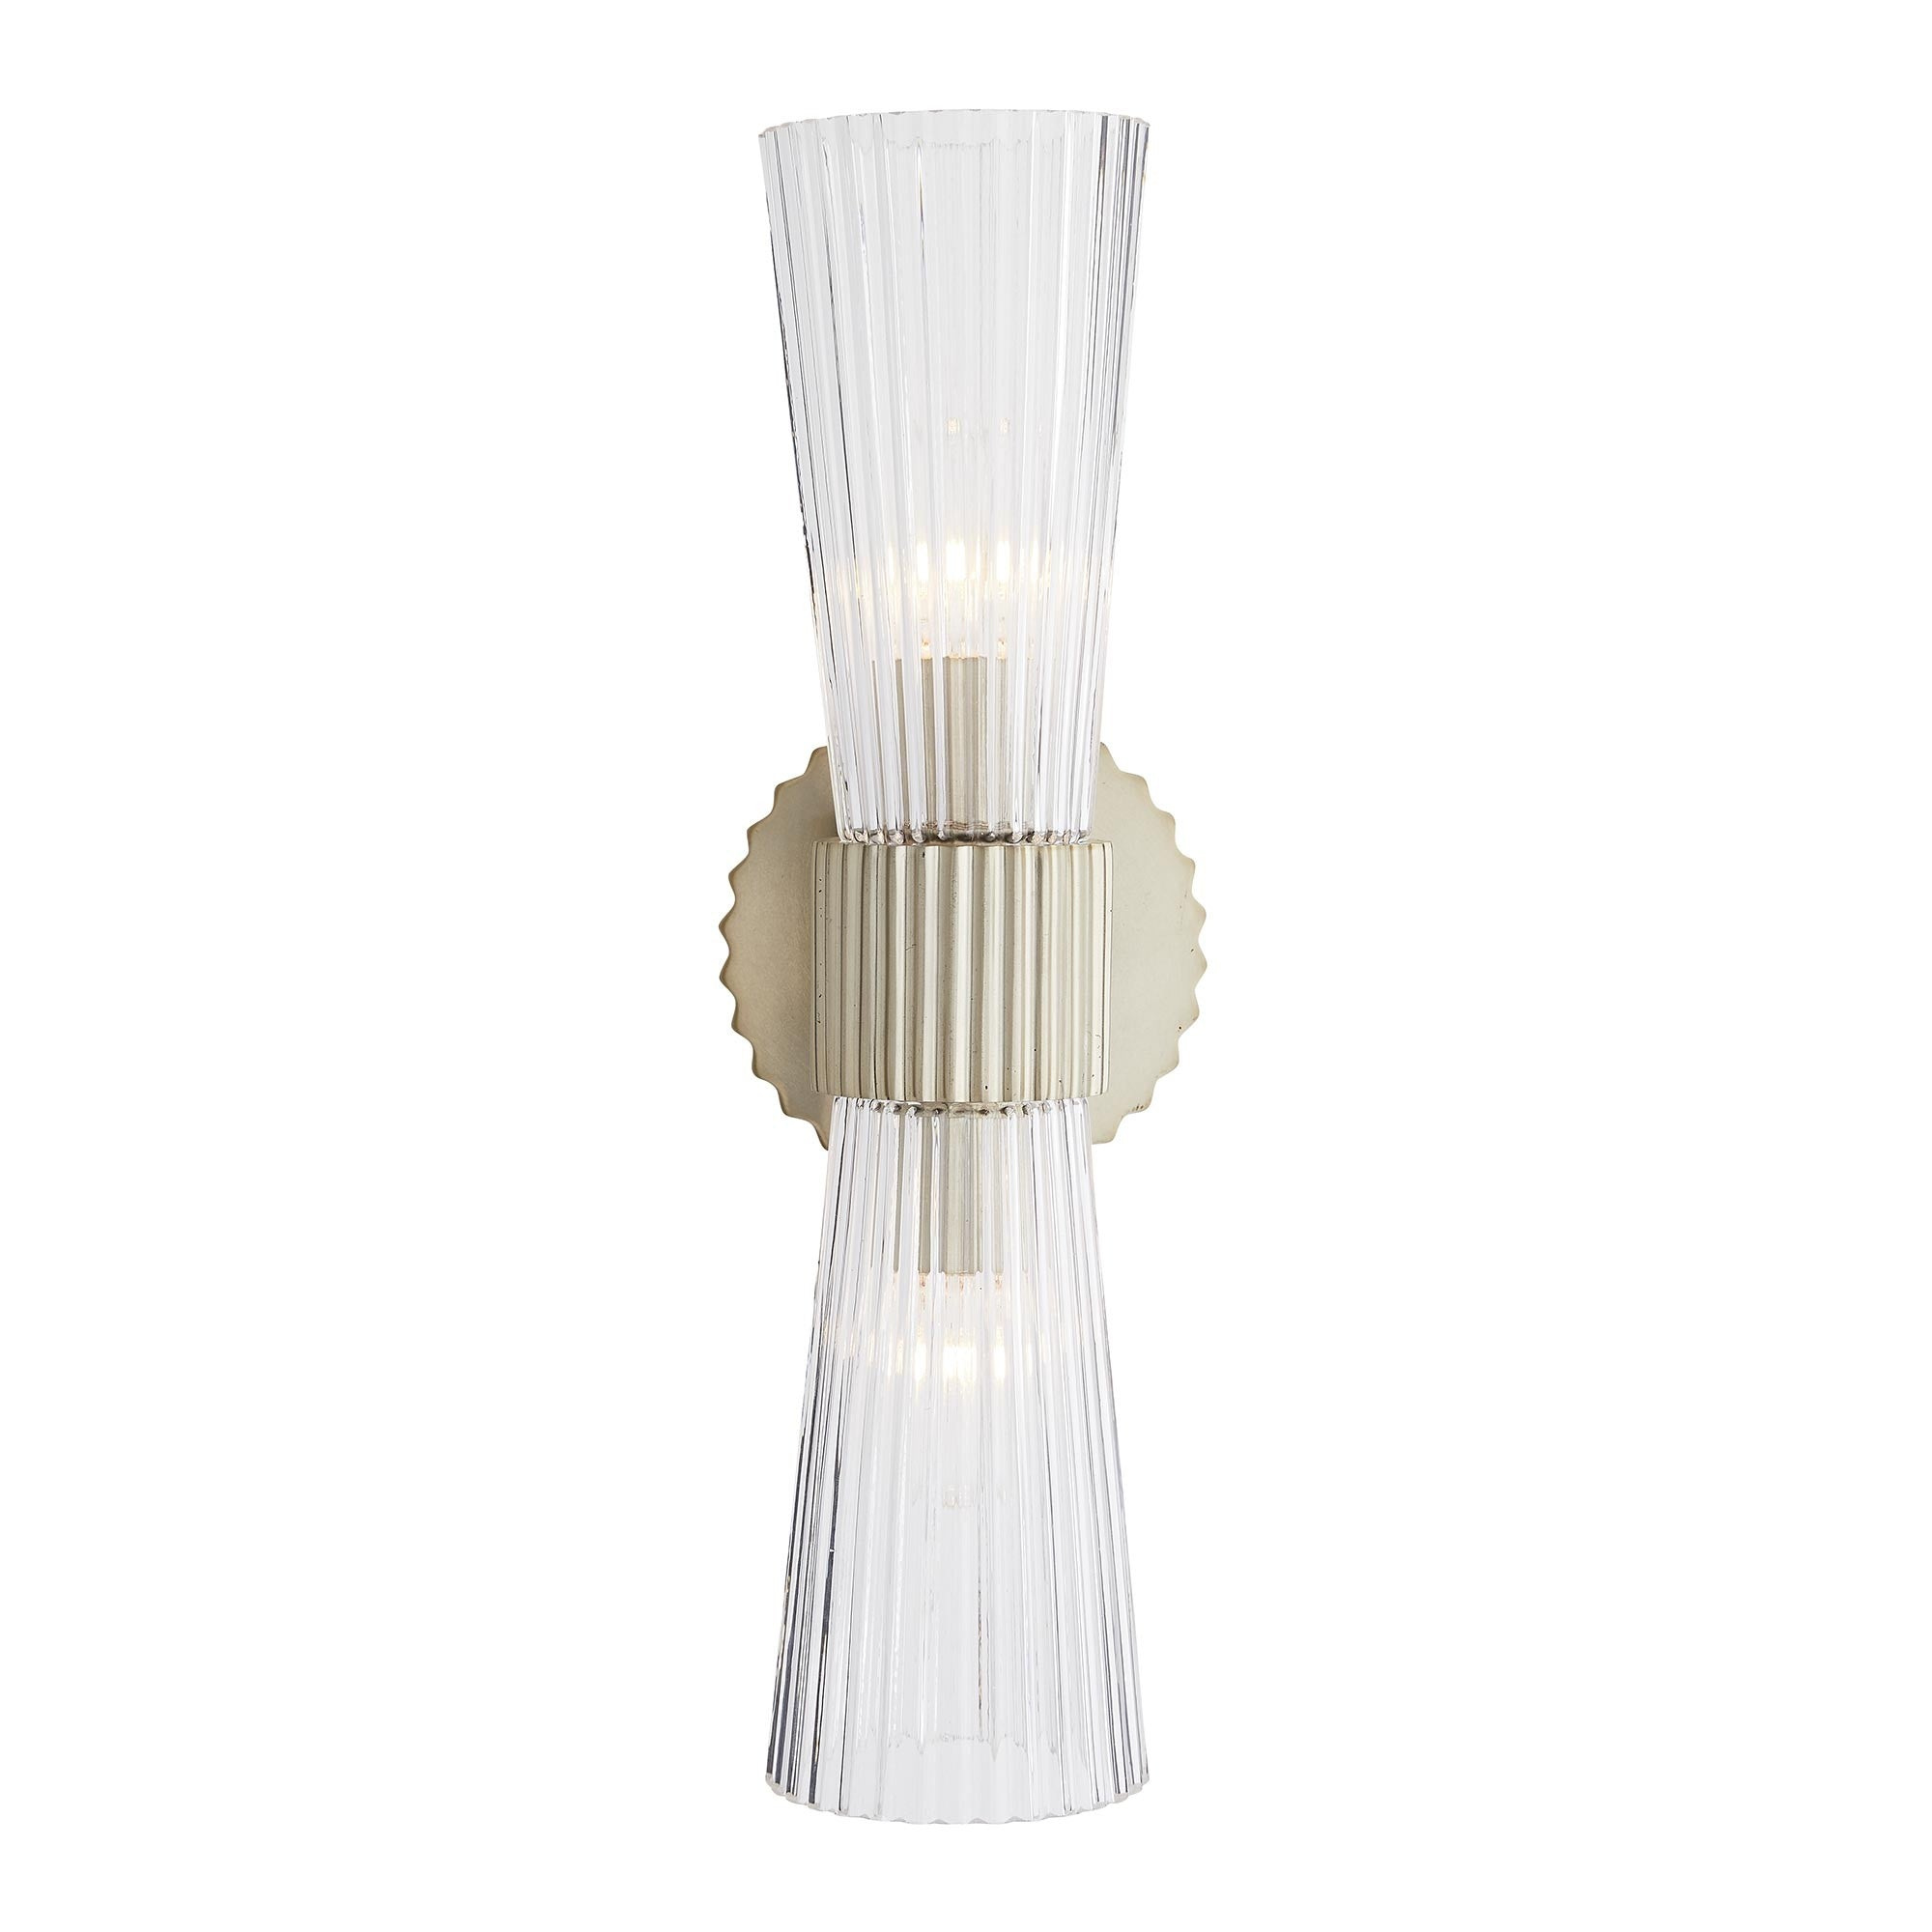 Whittier Sconce